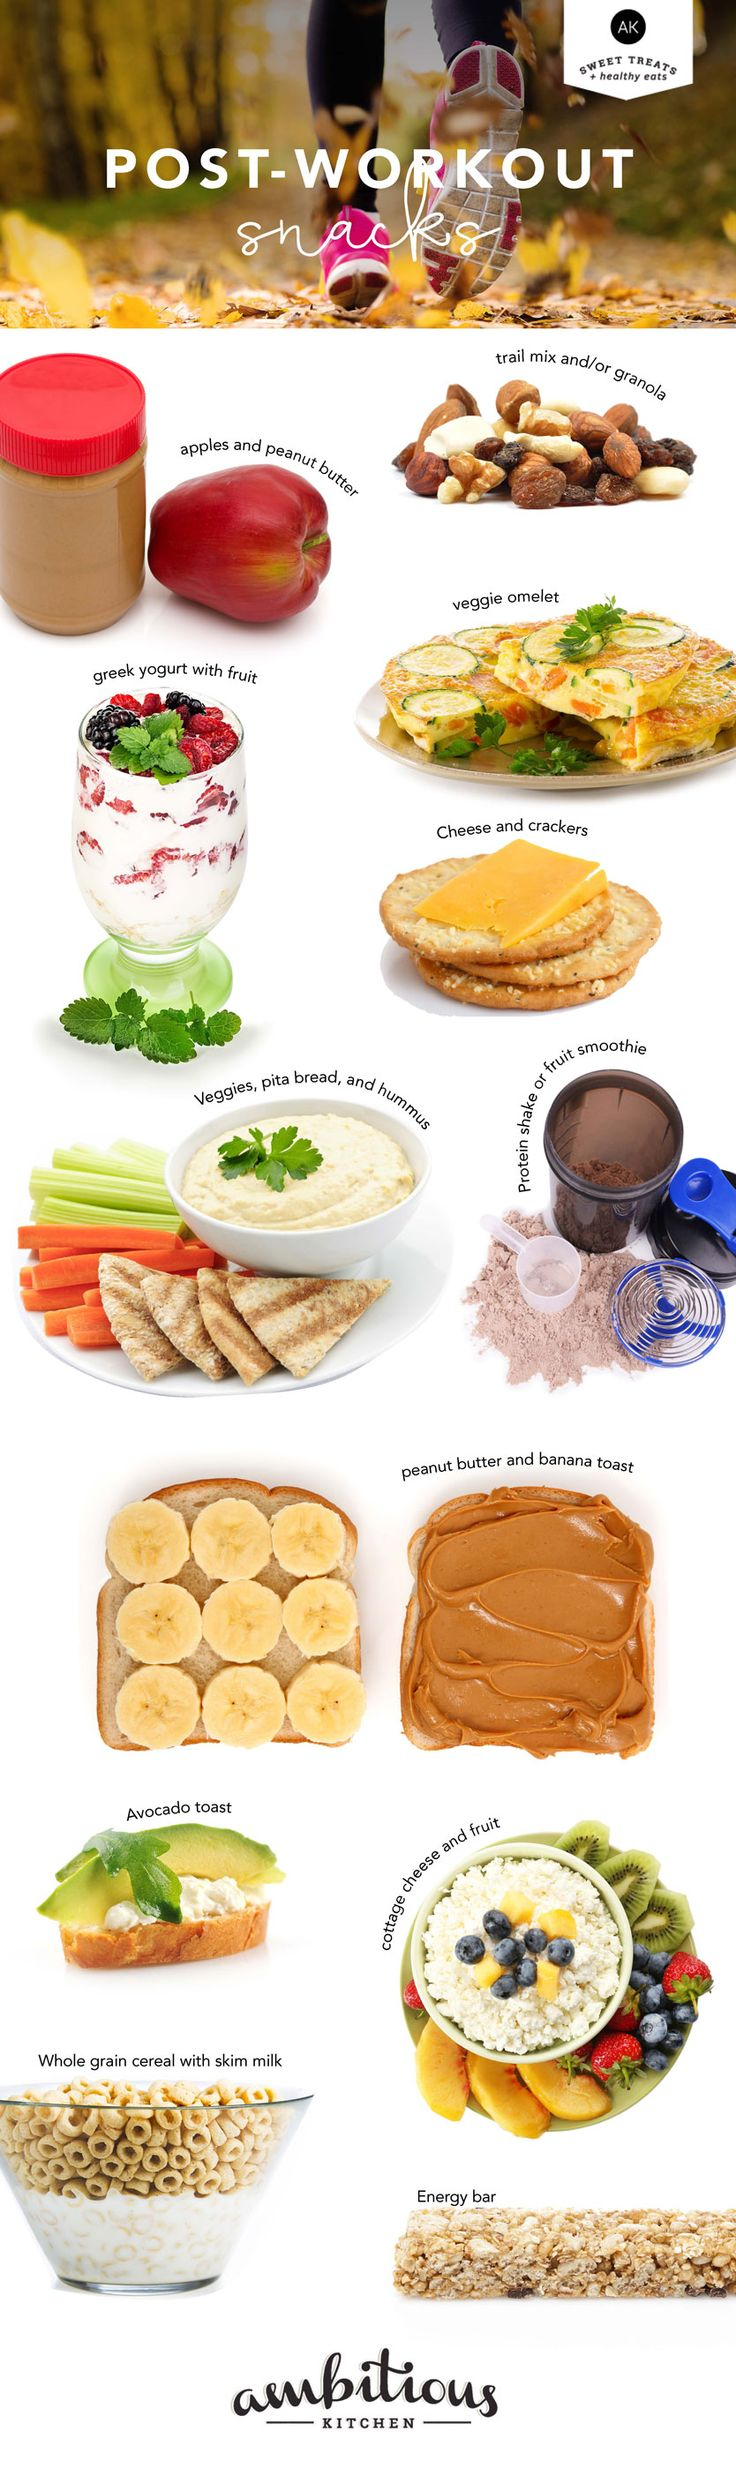 World best diet plan for weight loss image 10